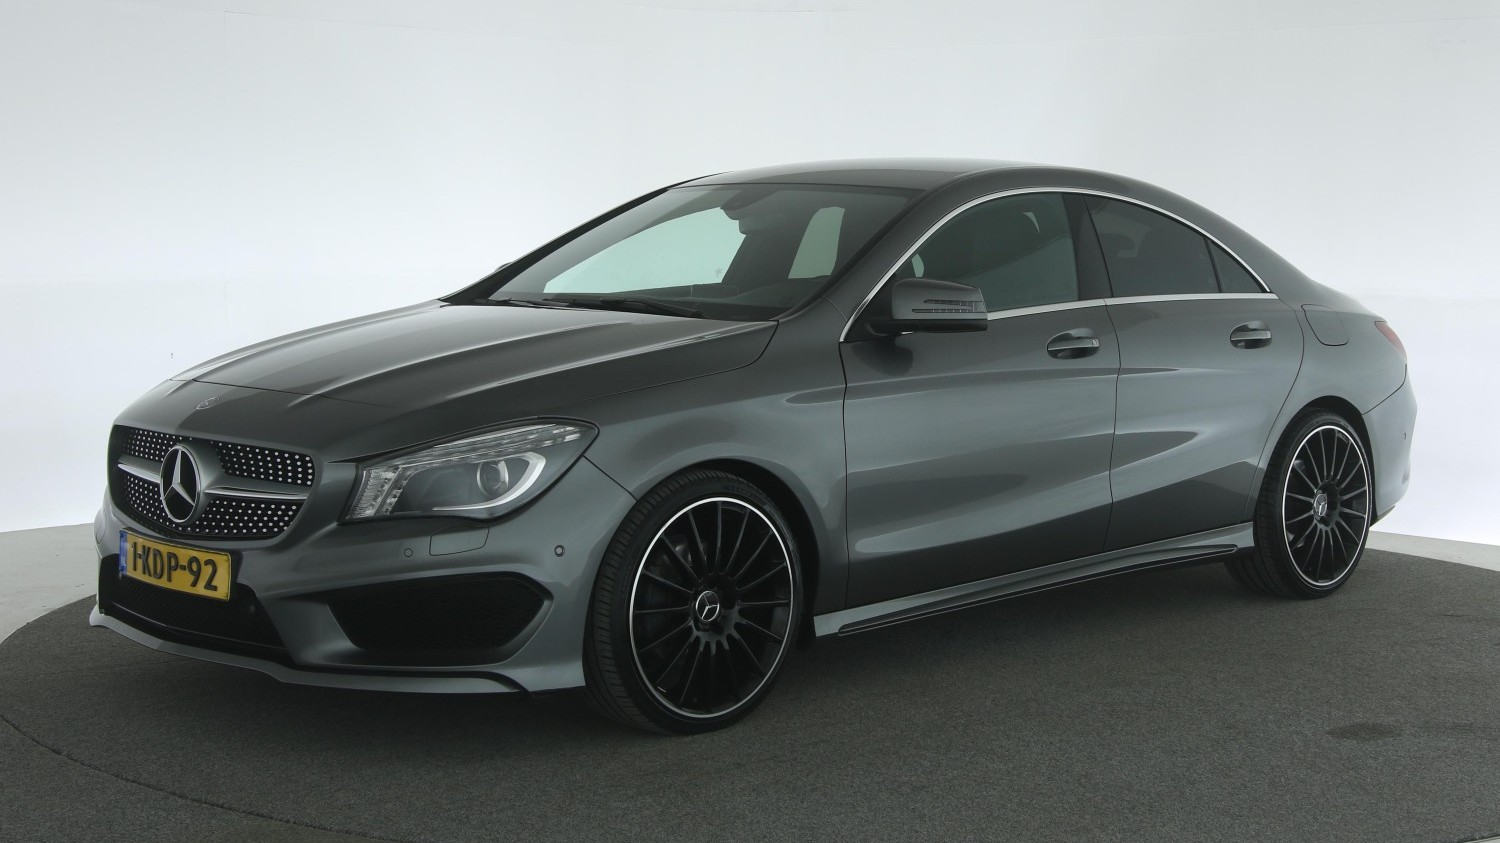 Mercedes-Benz CLA-klasse Sedan 2013 1-KDP-92 1